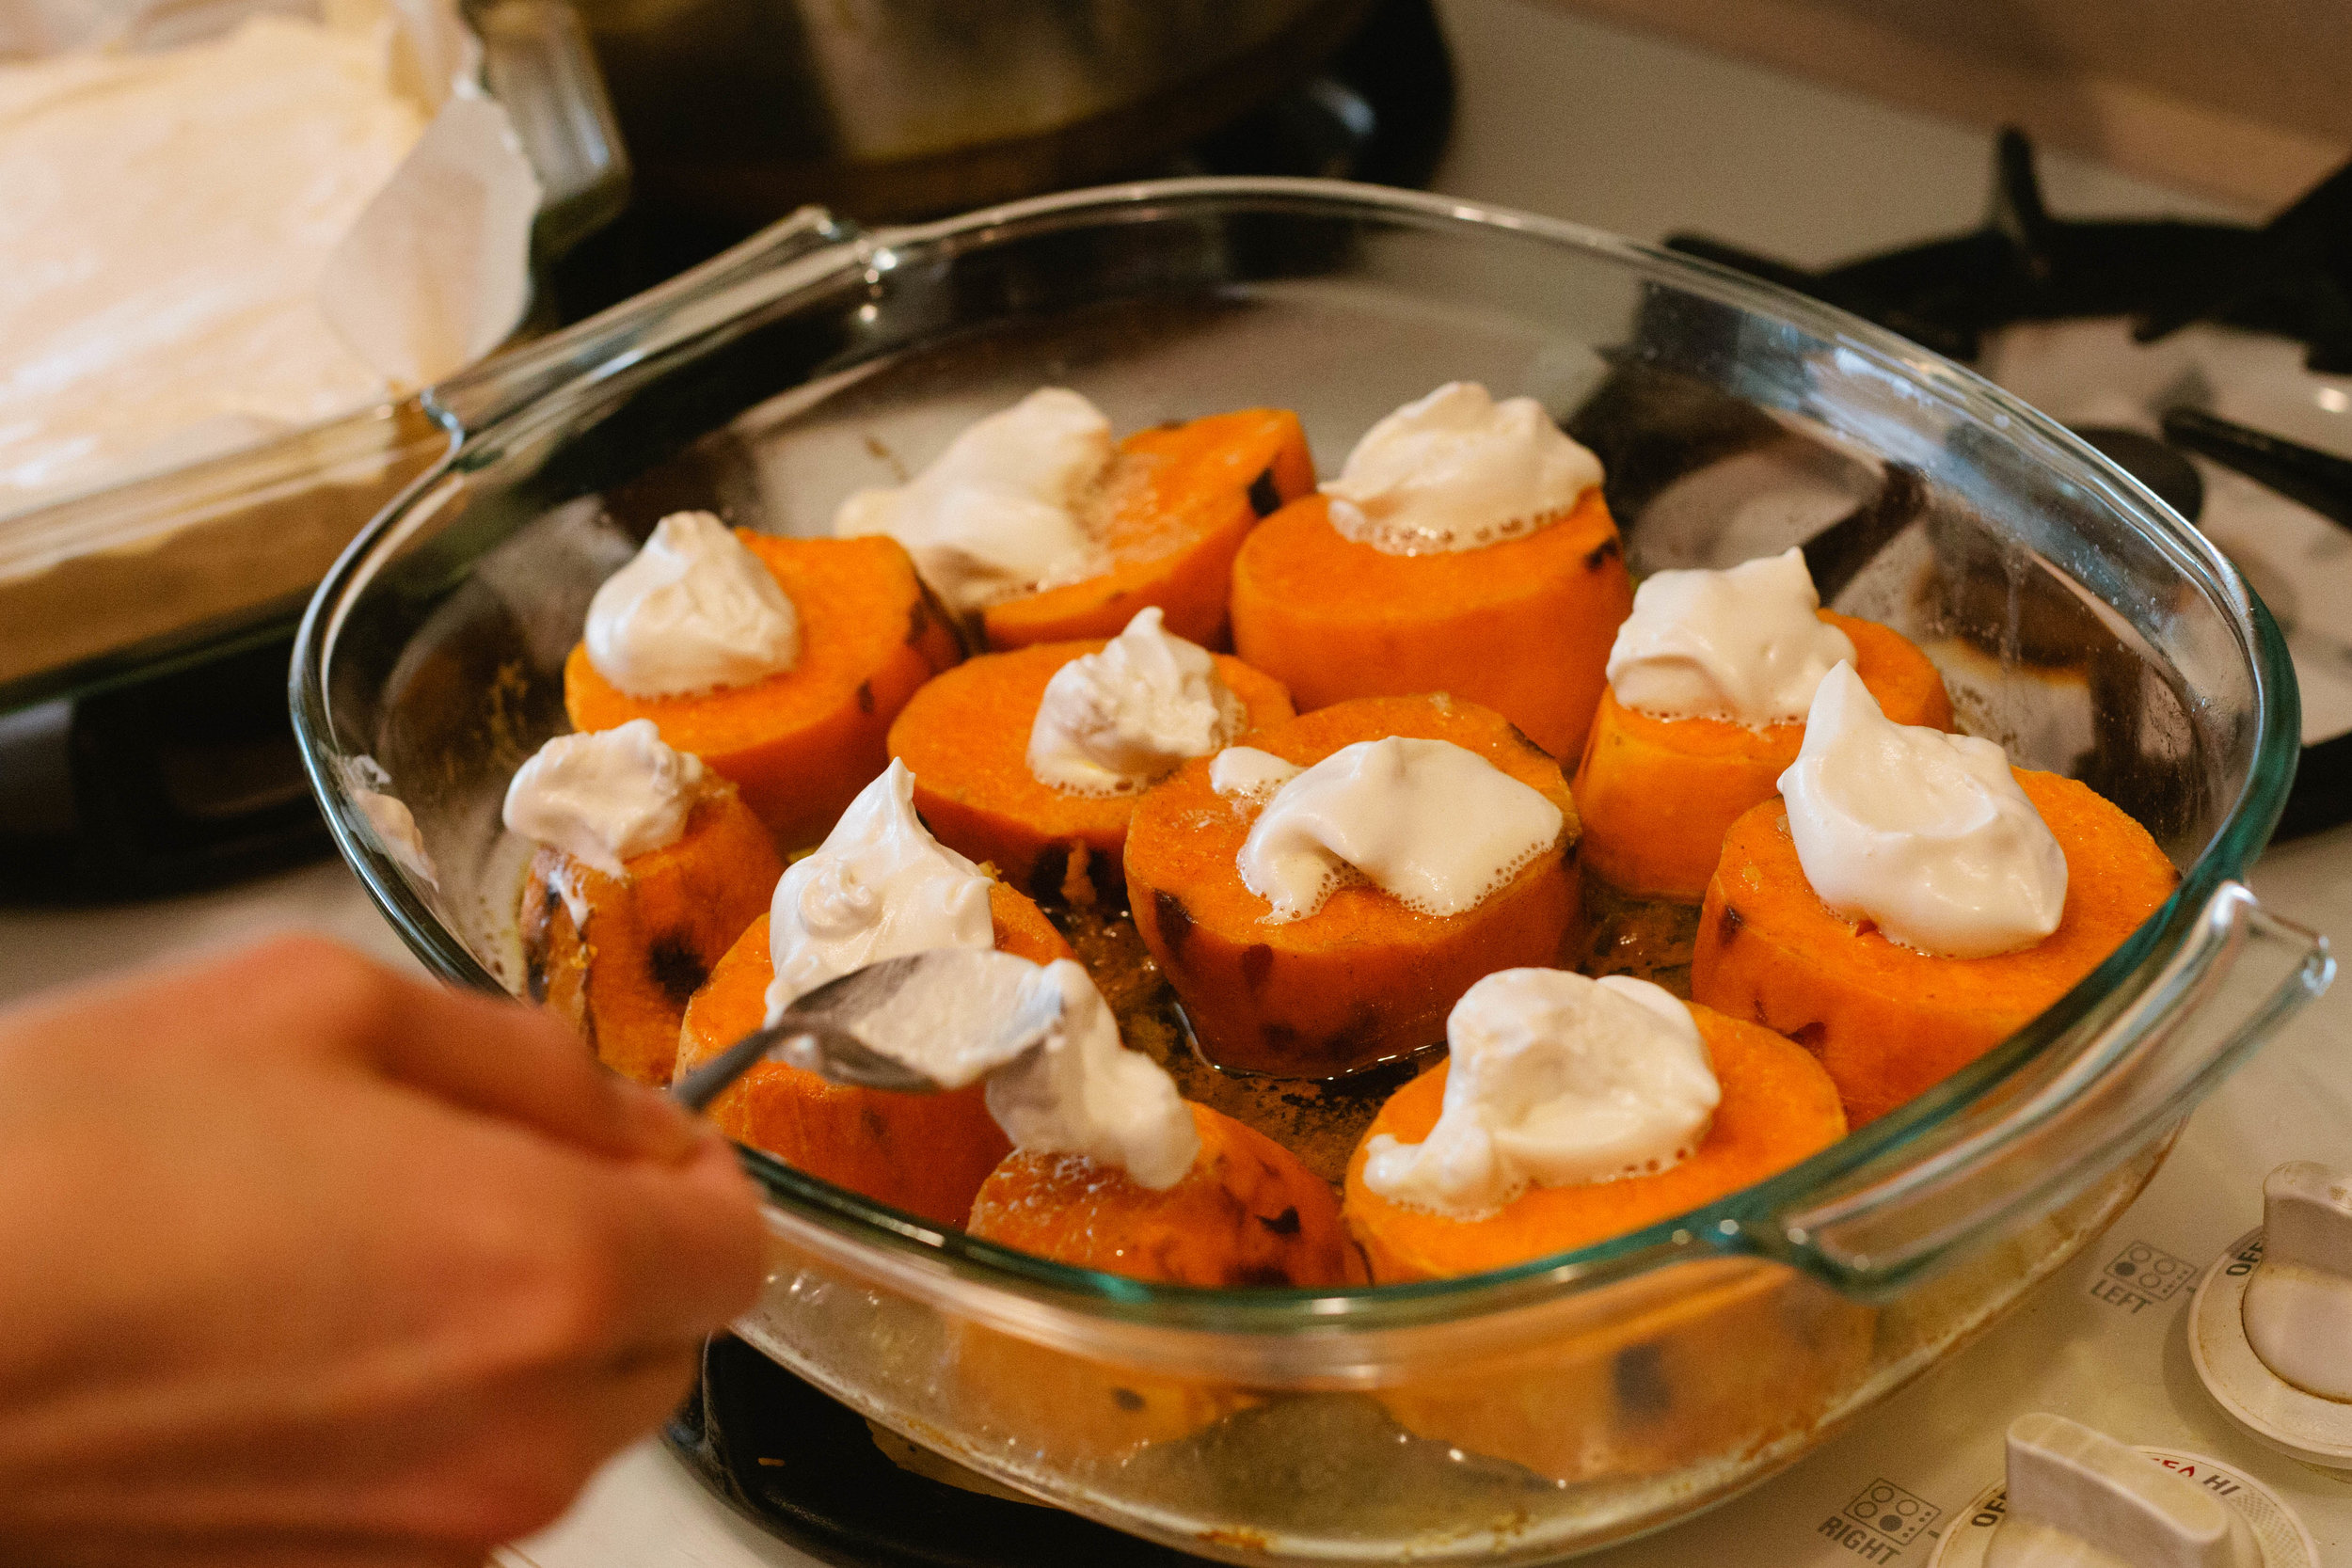 roasted-sweet-potatoes-how-to-make-sweet-potatoes-on-gaps-gaps-diet-thanksgiving-meals-holiday-meals-on-the-gaps-diet-what-do-i-eat-on-gaps